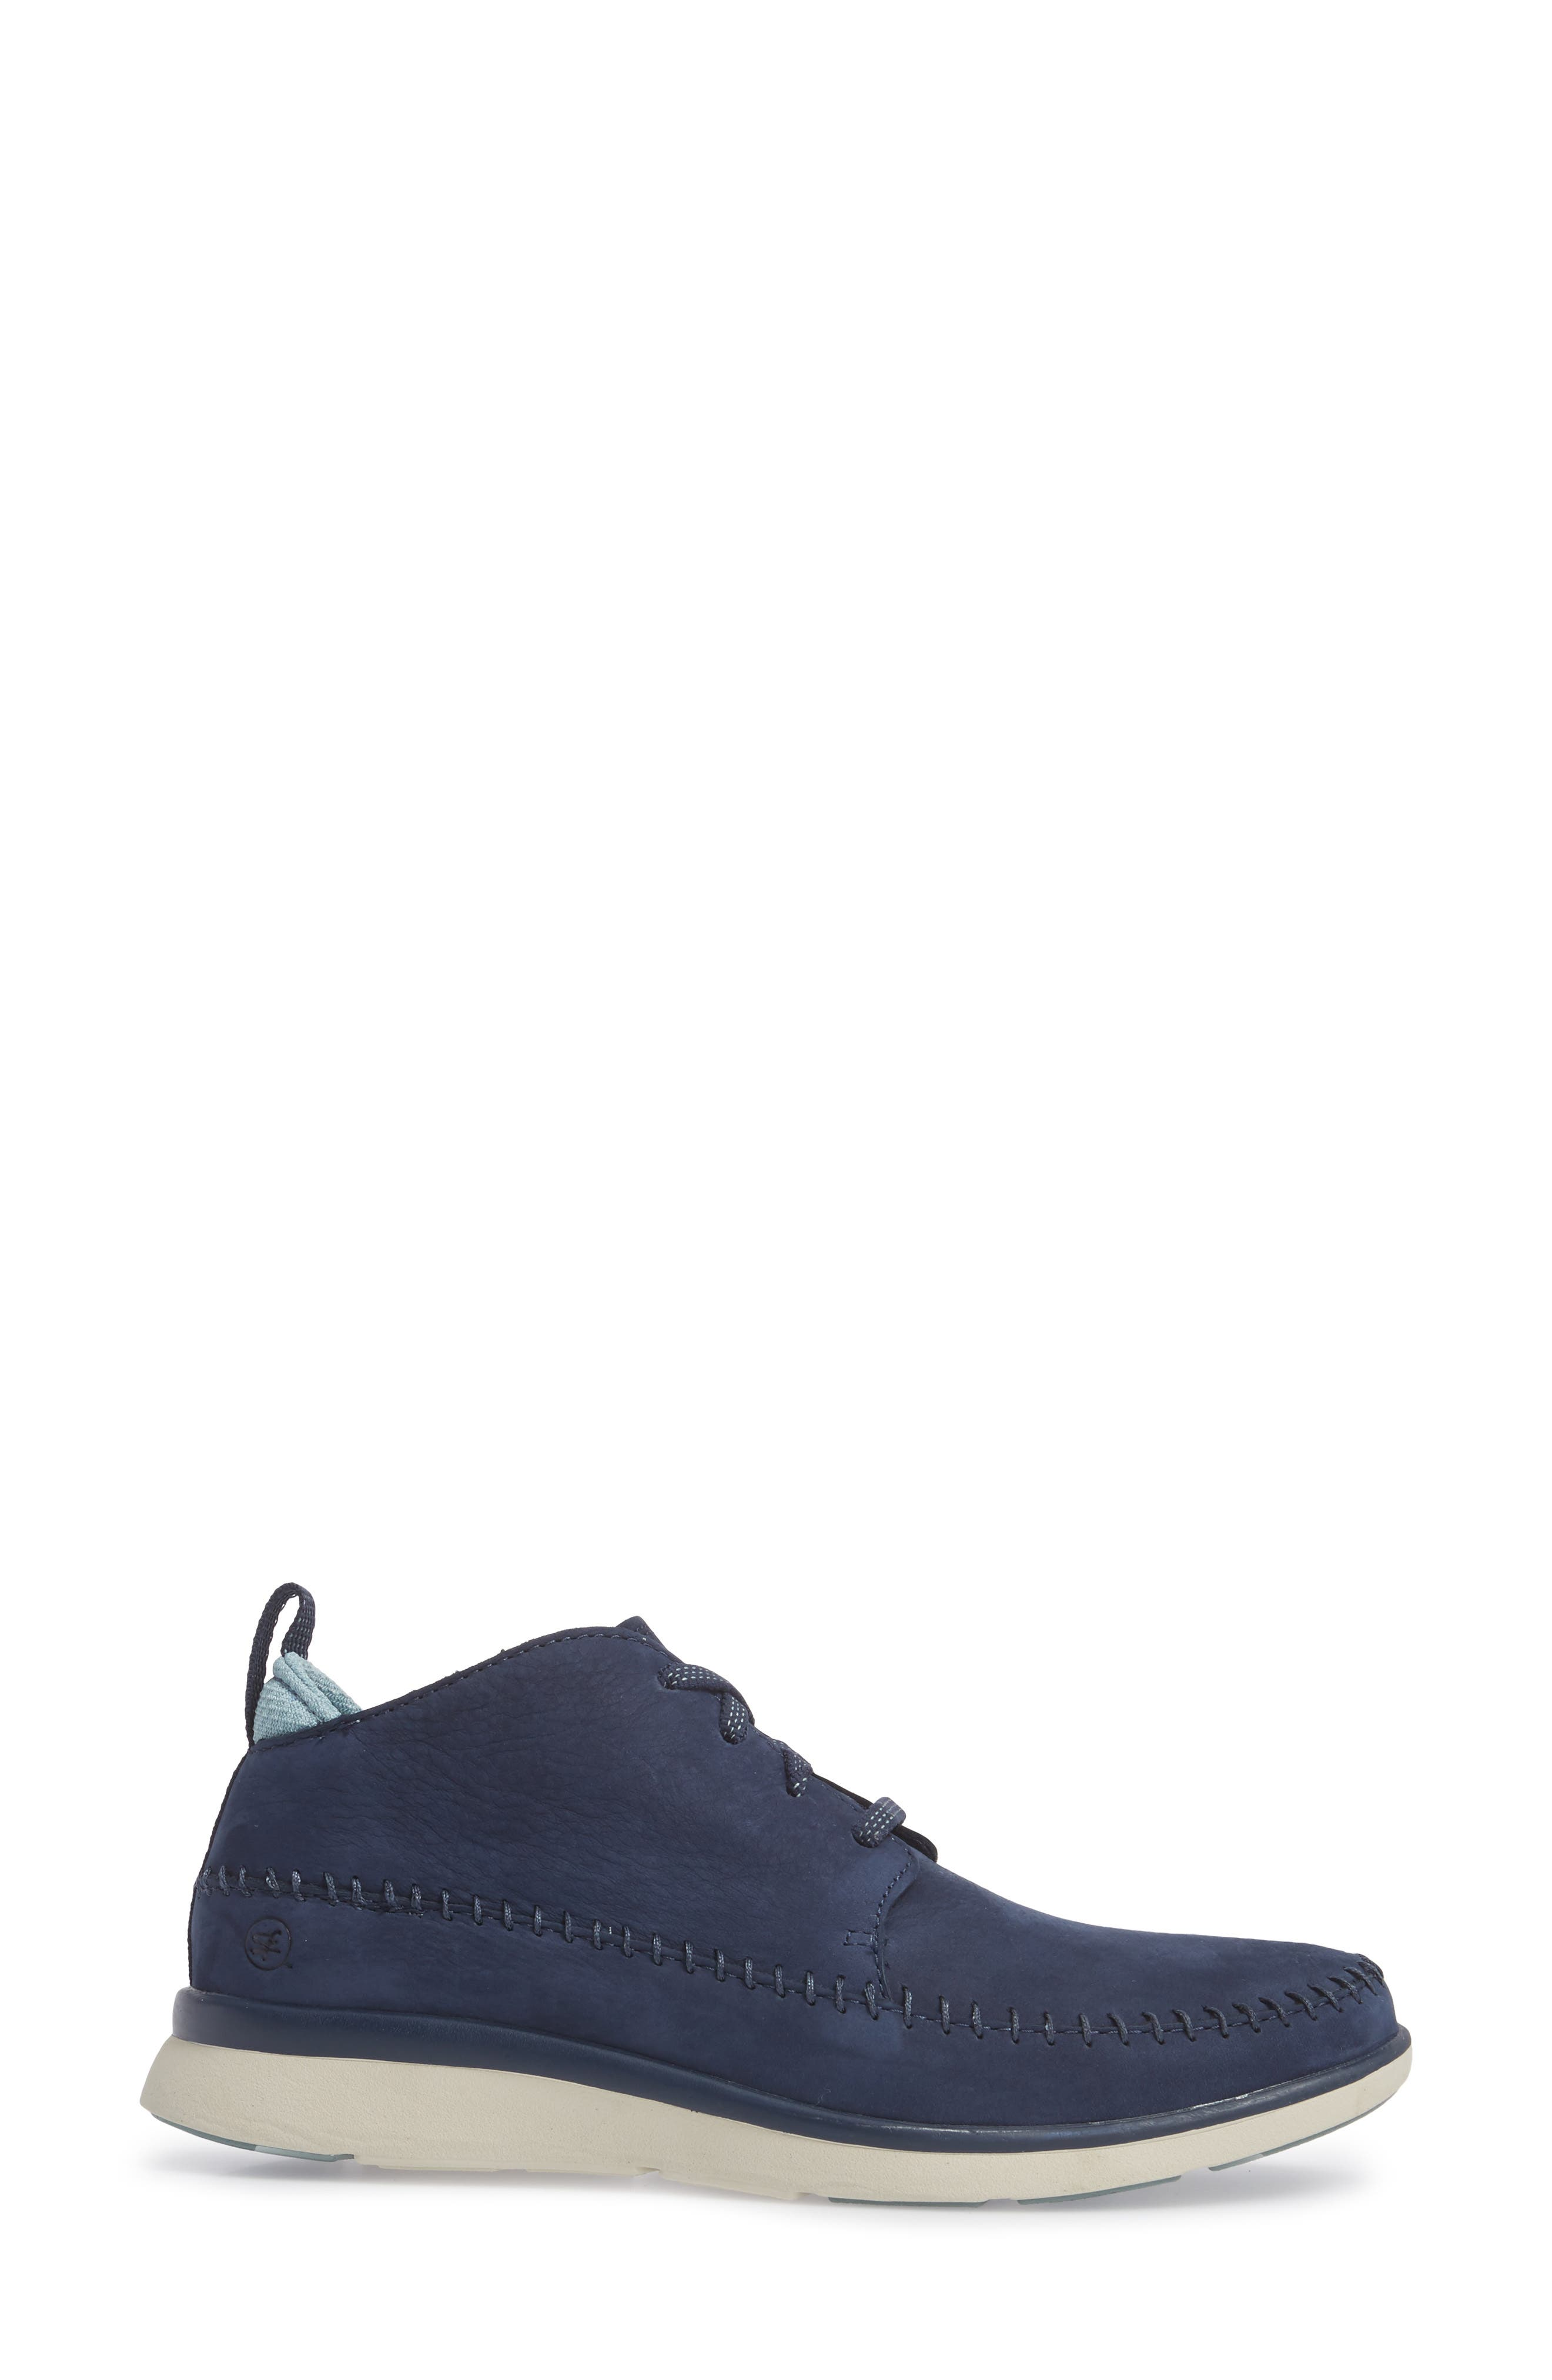 Olympia Lace-Up Sneaker,                             Alternate thumbnail 3, color,                             Blue Nubuck